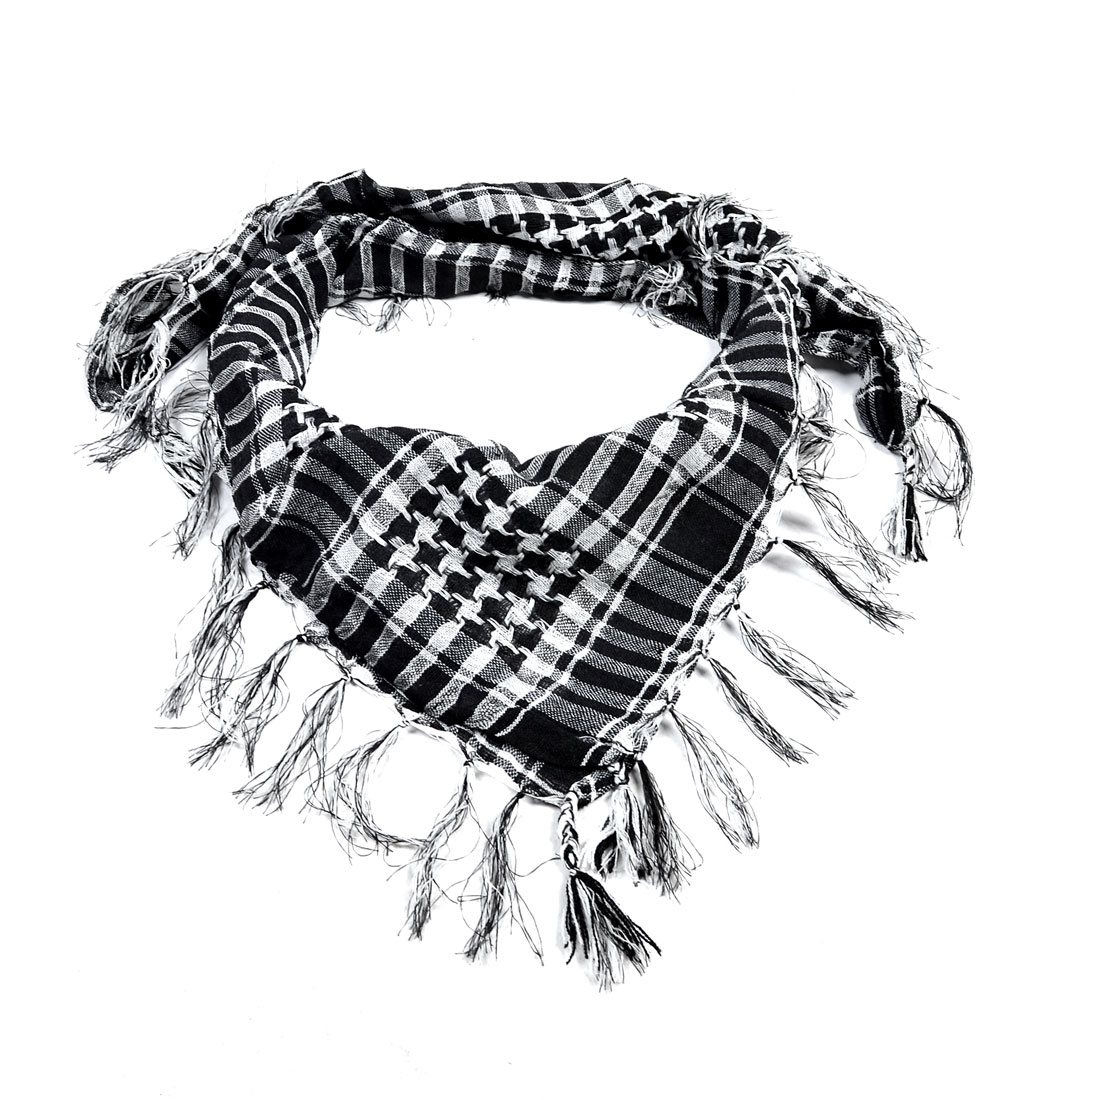 Ladies Black White Houndstooth Tassels Square Scarf Wrap Neck Ornament